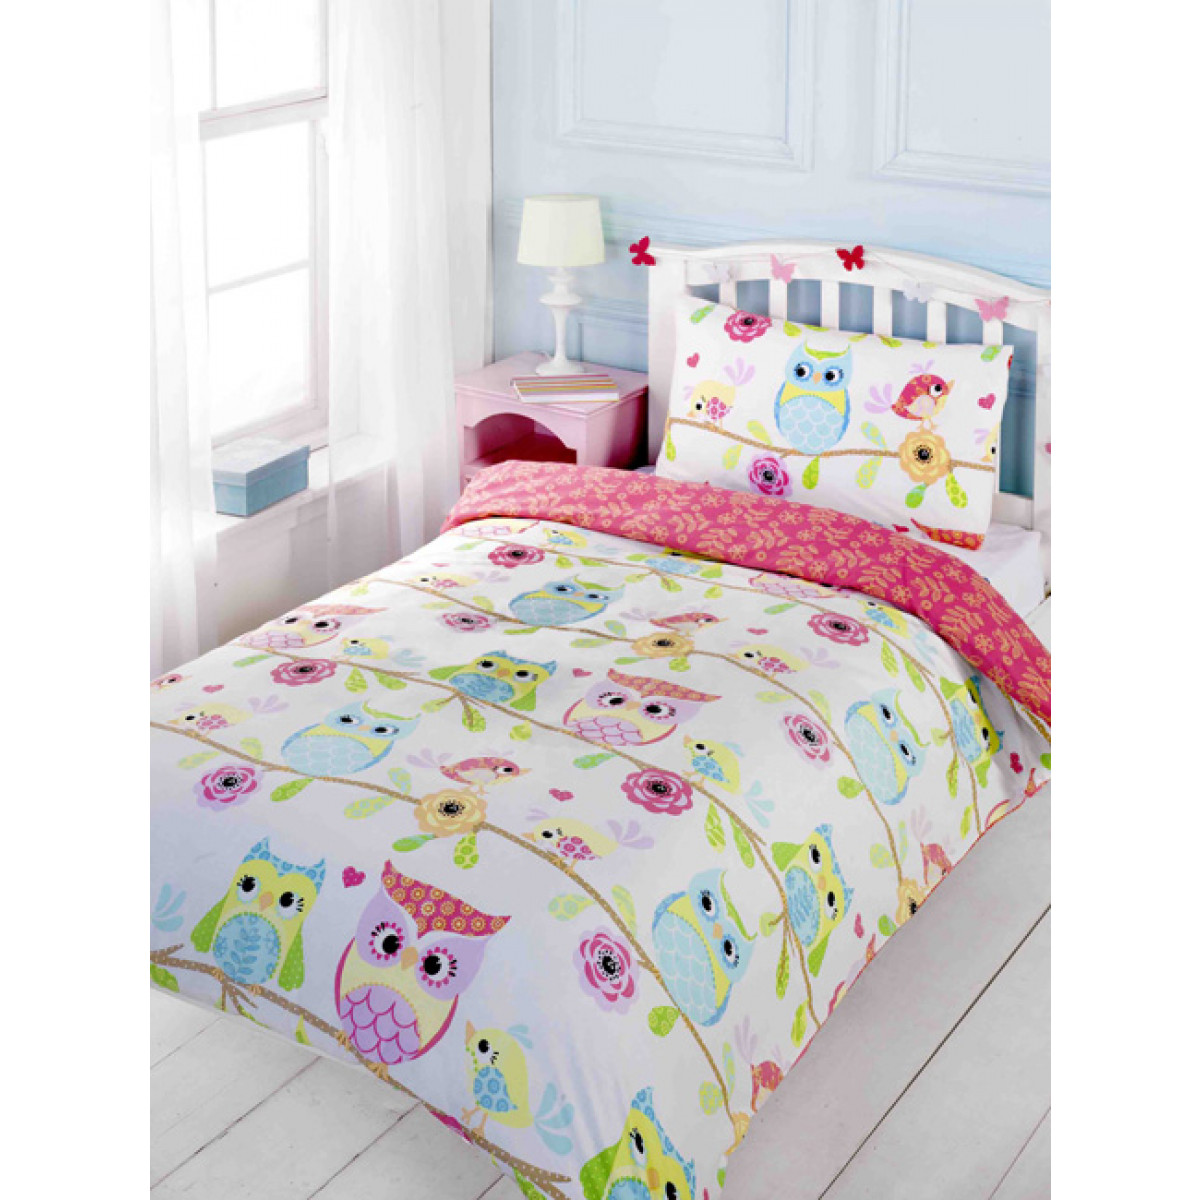 Owl And Friends Double Duvet Cover And Pillowcase Set